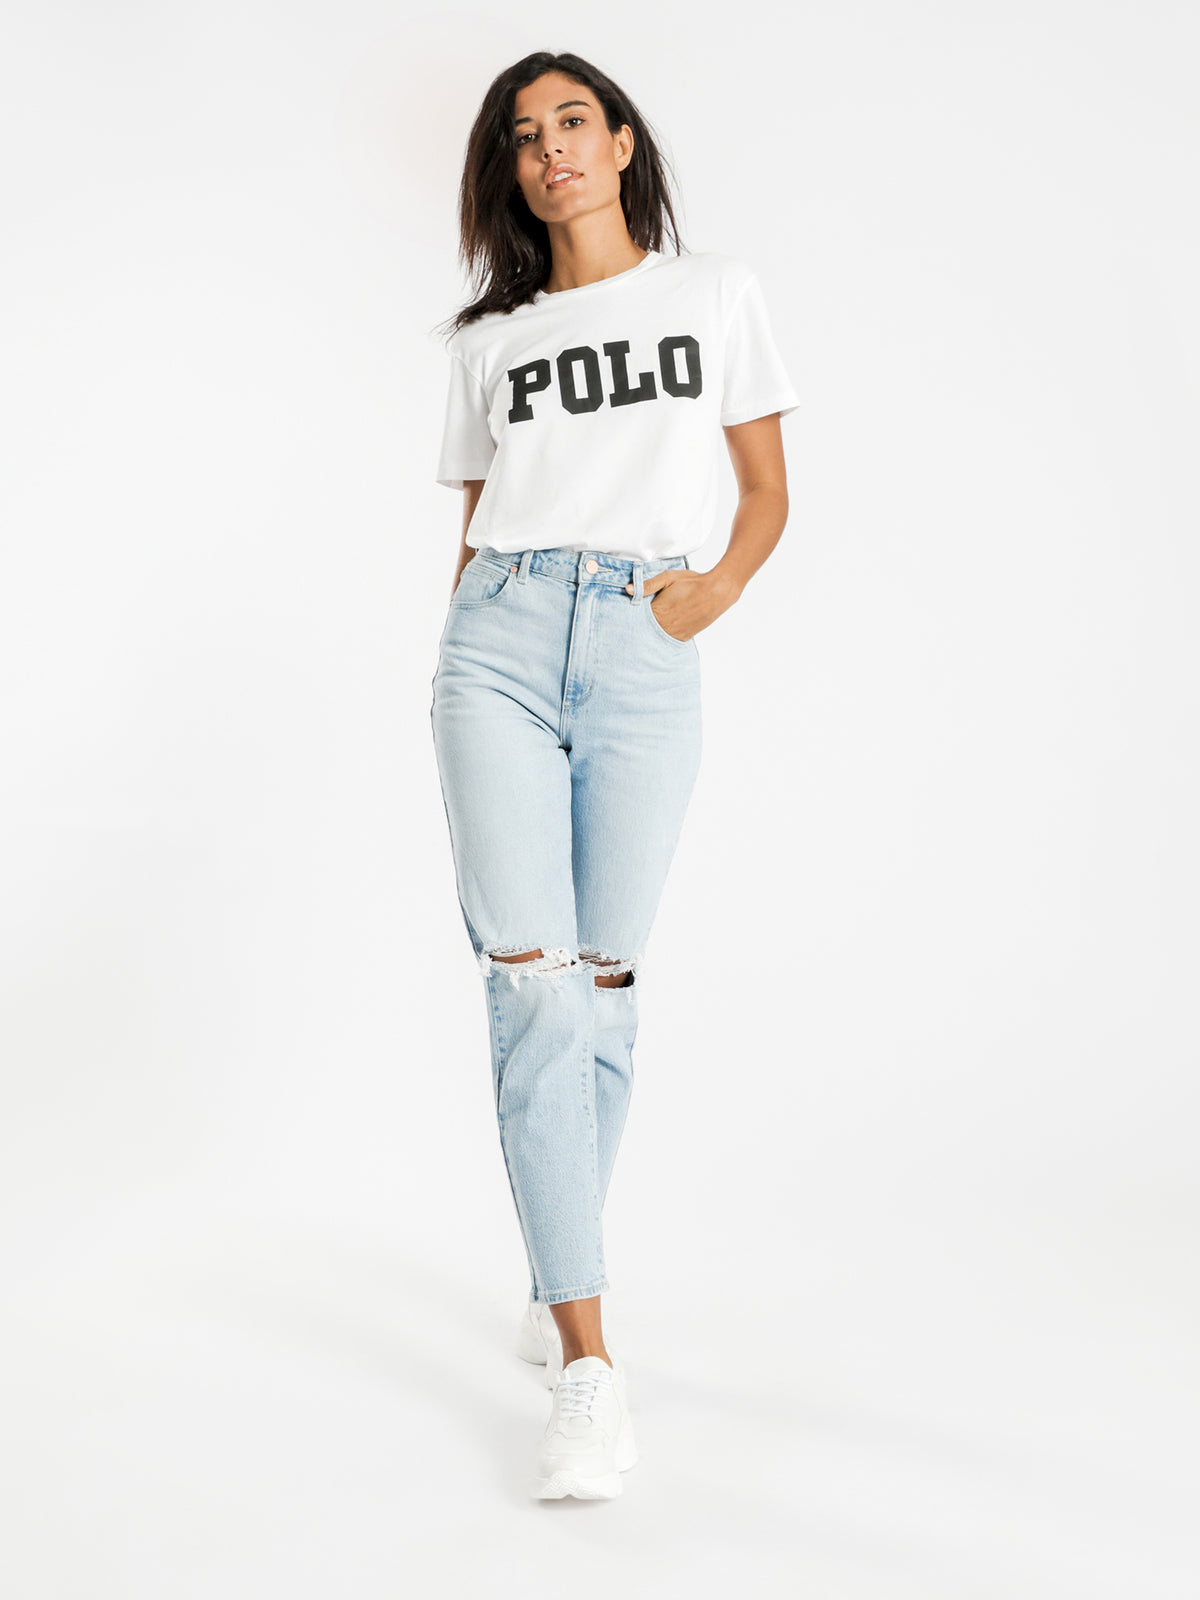 Big Polo Logo T-Shirt in White